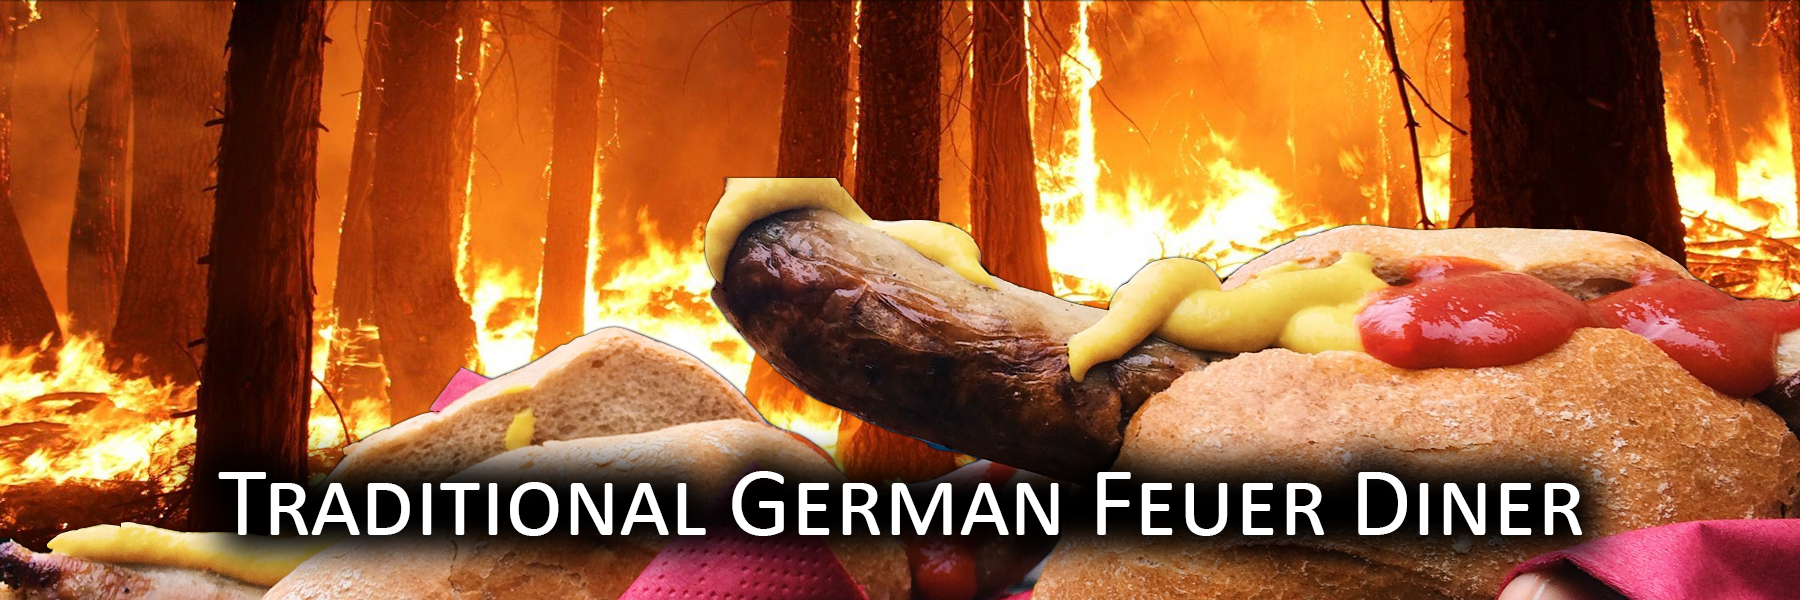 Traditional German Feuer Diner